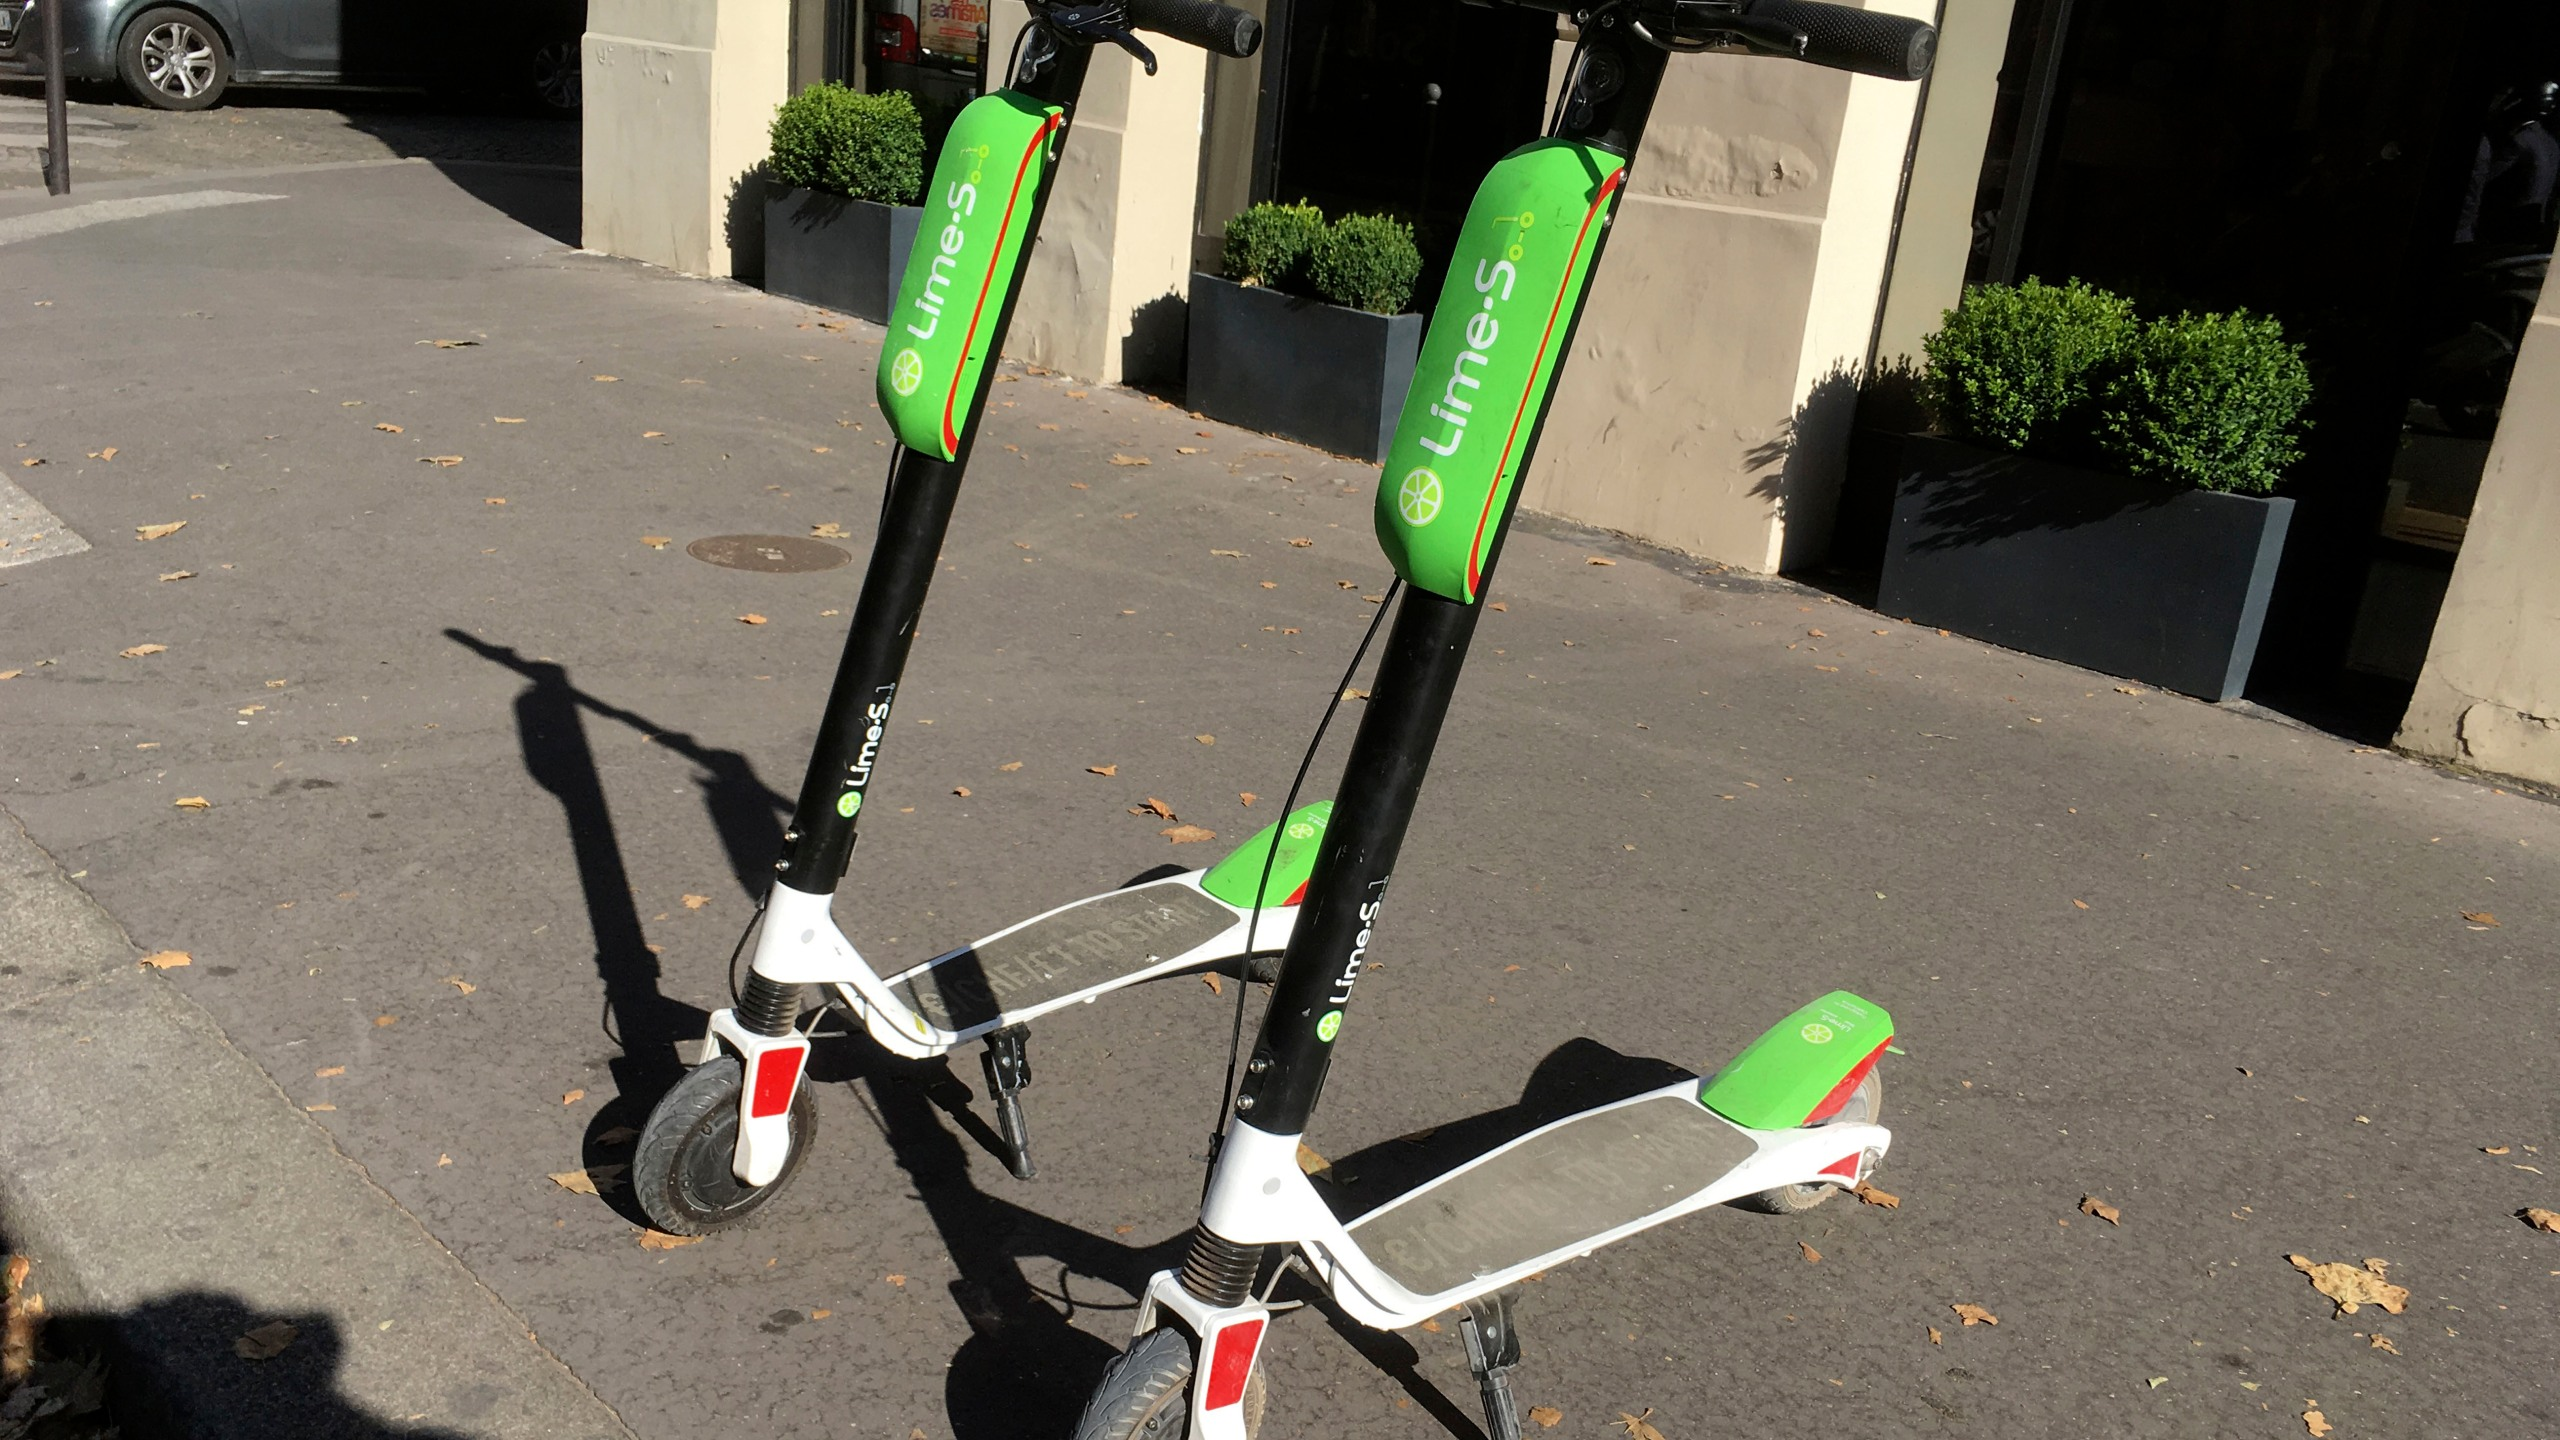 Uber_Lime_Scooters_45001-159532.jpg65792860